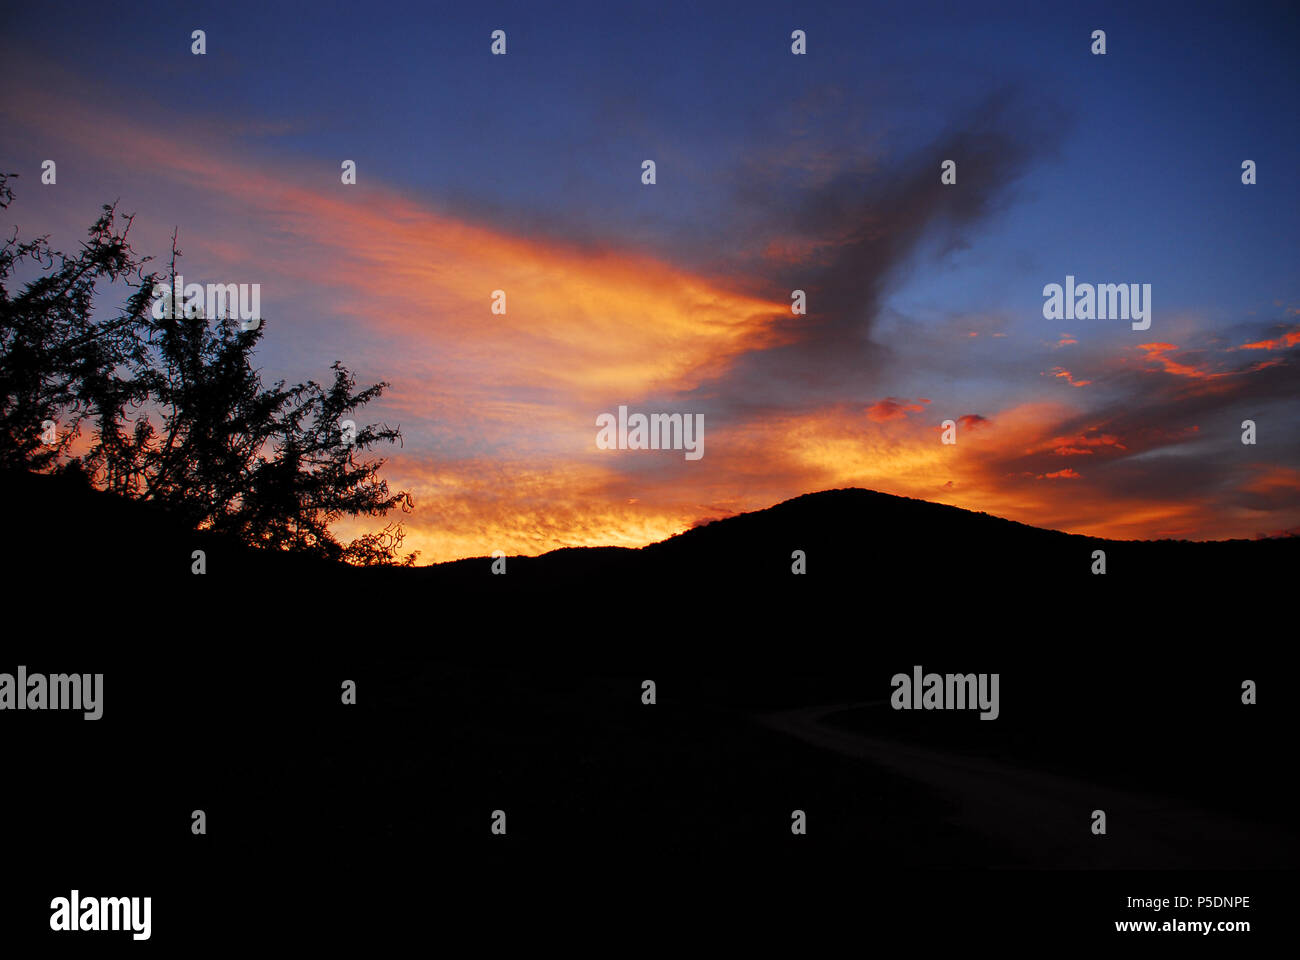 A stunning safari sunset in the South African wilderness creates an amazing background for any media presentation. - Stock Image